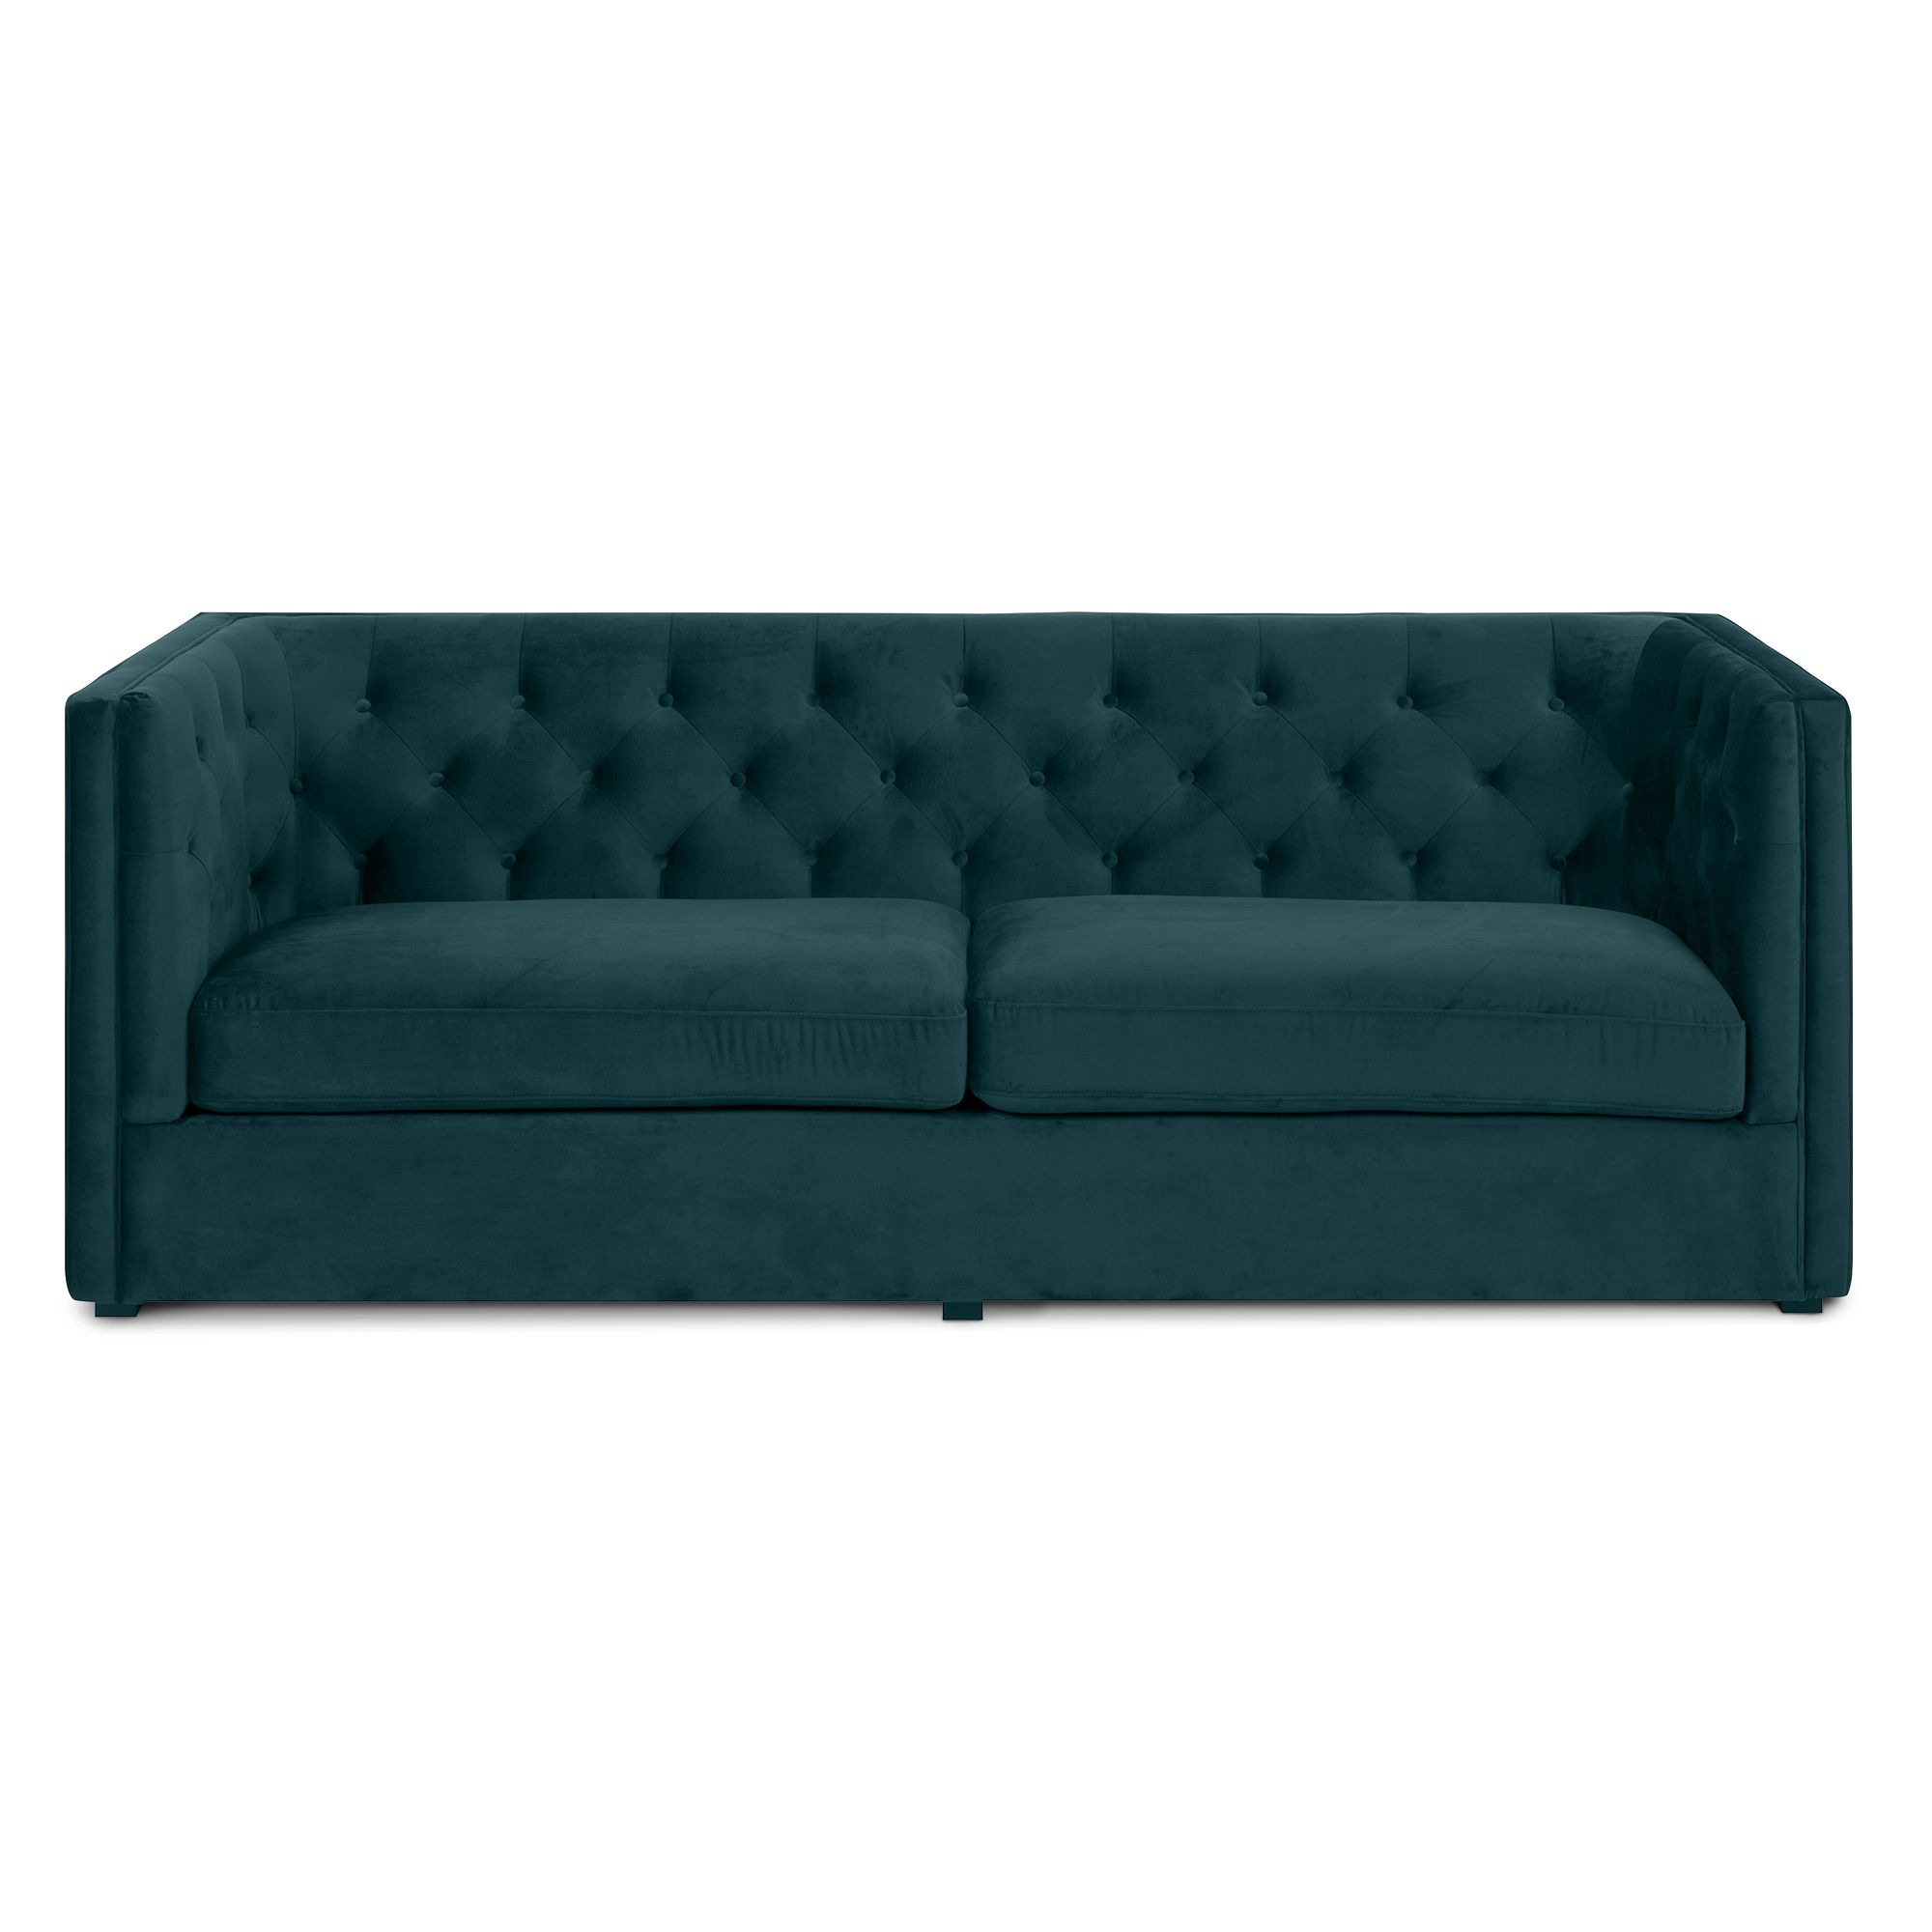 charlston 3 pers sofa en moderne chesterfield sofa monteret med flaske gr n velour stof der. Black Bedroom Furniture Sets. Home Design Ideas